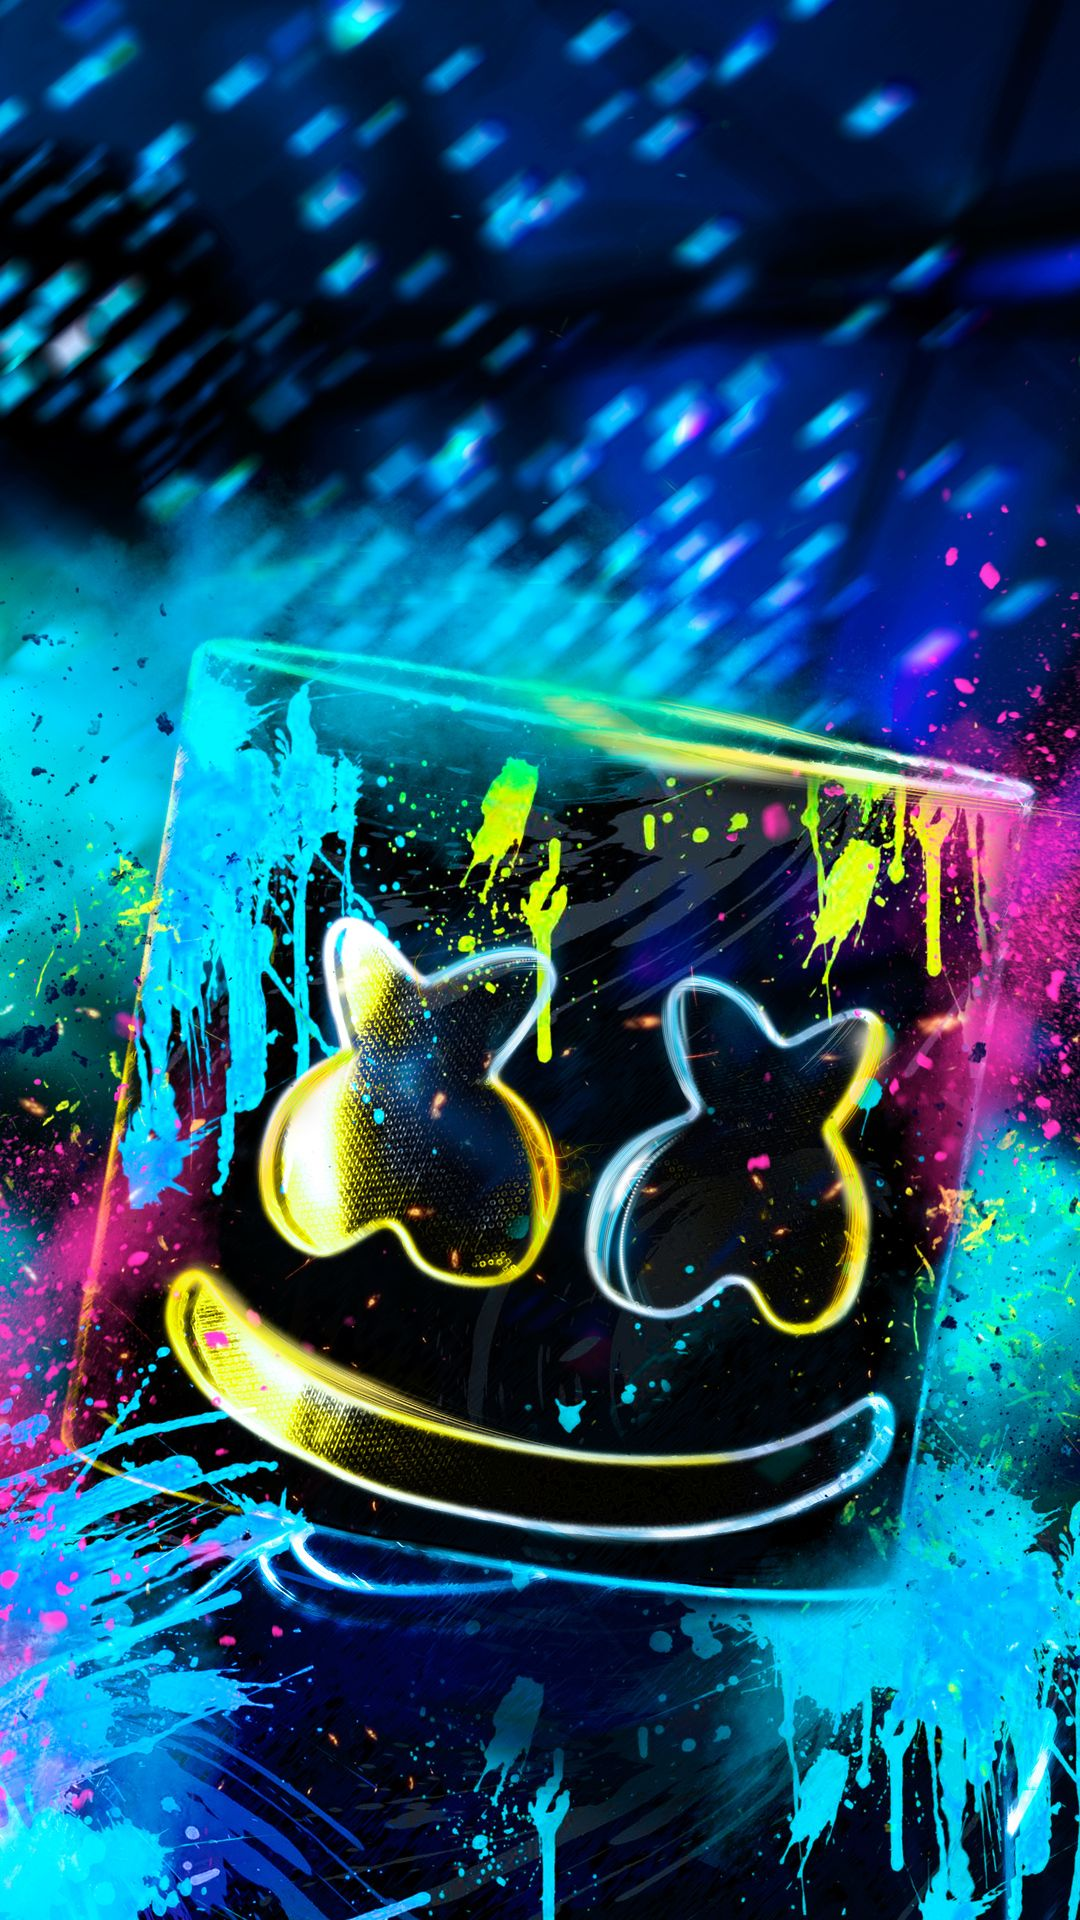 Neon Marshmello In 1080x1920 Resolution Neon Wallpaper Graffiti Wallpaper Hypebeast Wallpaper